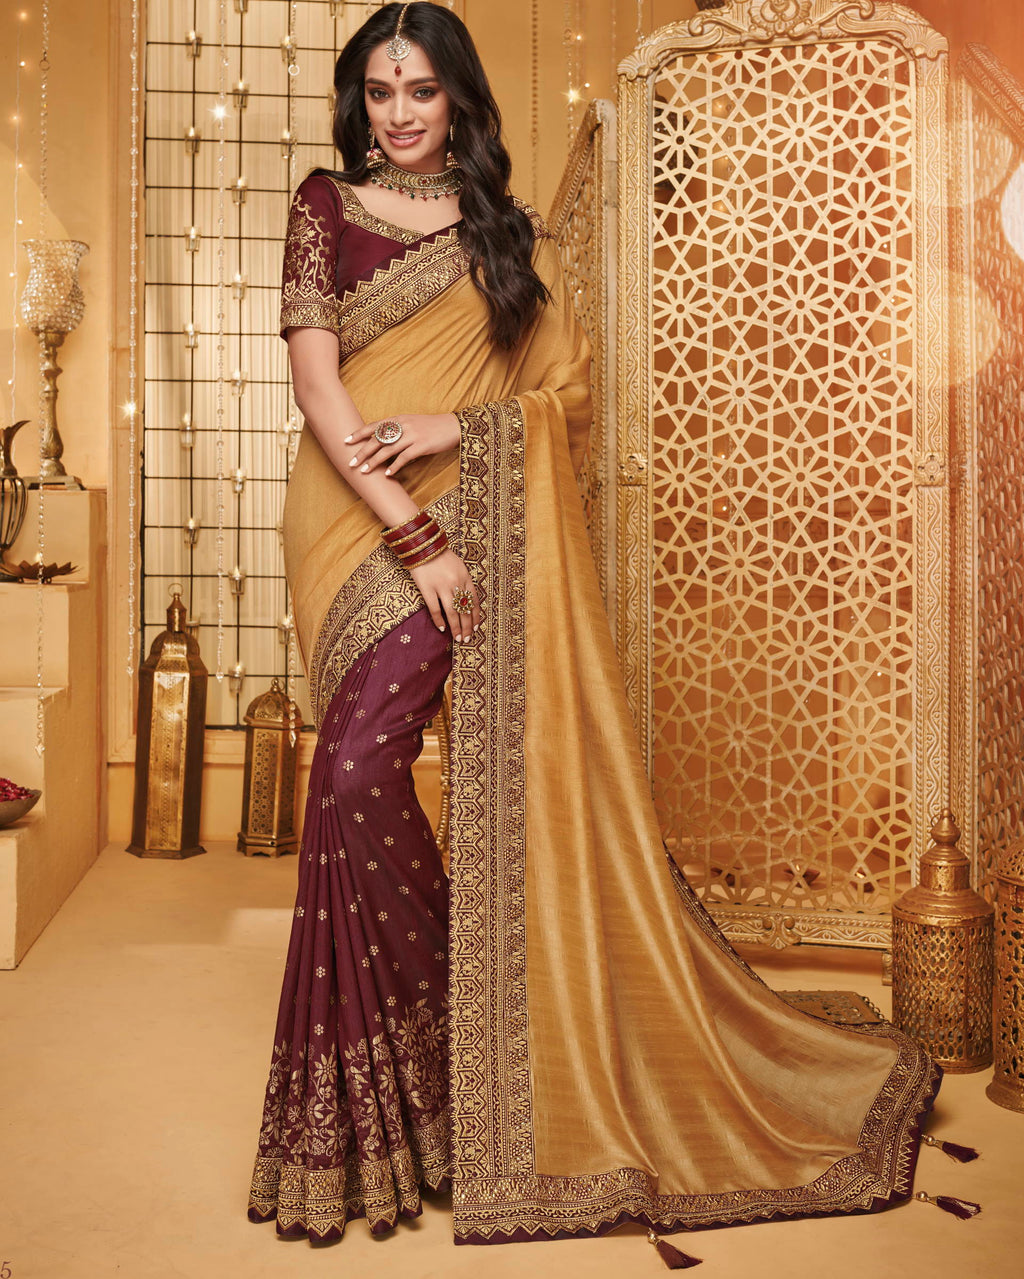 Golden & Maroon Color Silk Beautiful Occasion Wear Sarees NYF-4194 - YellowFashion.in